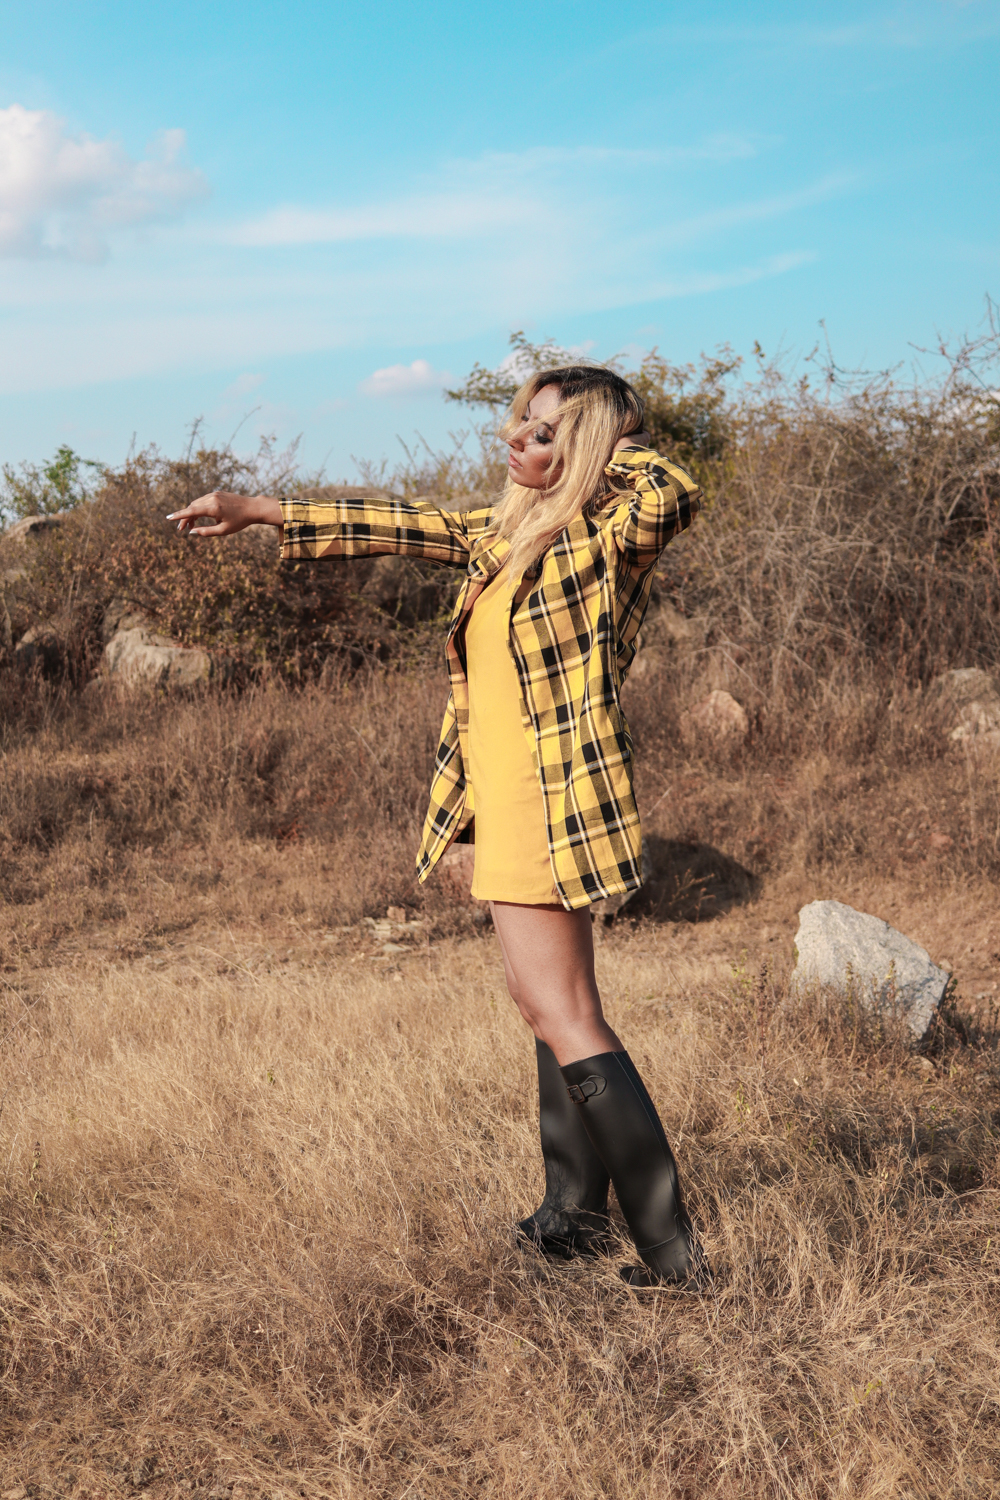 Yellow Plaid coat ; Winter Coat ; Fall Fashion ; Layering ; Blonde ; Tall boots ; Conceptual ; Winter Outfit ; Runway Fashion ; 70s fashion ; fashion photography ; ootd ; fall look ; winter Fashion ; zaful ; fall 18 ; Hyderabad ; Editorial ; Naznin ; Naznin Suhaer ; dusky; model ; indian blogger ; hyderabad fashion bloggers ; hyderabad bloggers ; hyderabad fashion blogger ; I Dress for the Applause ;